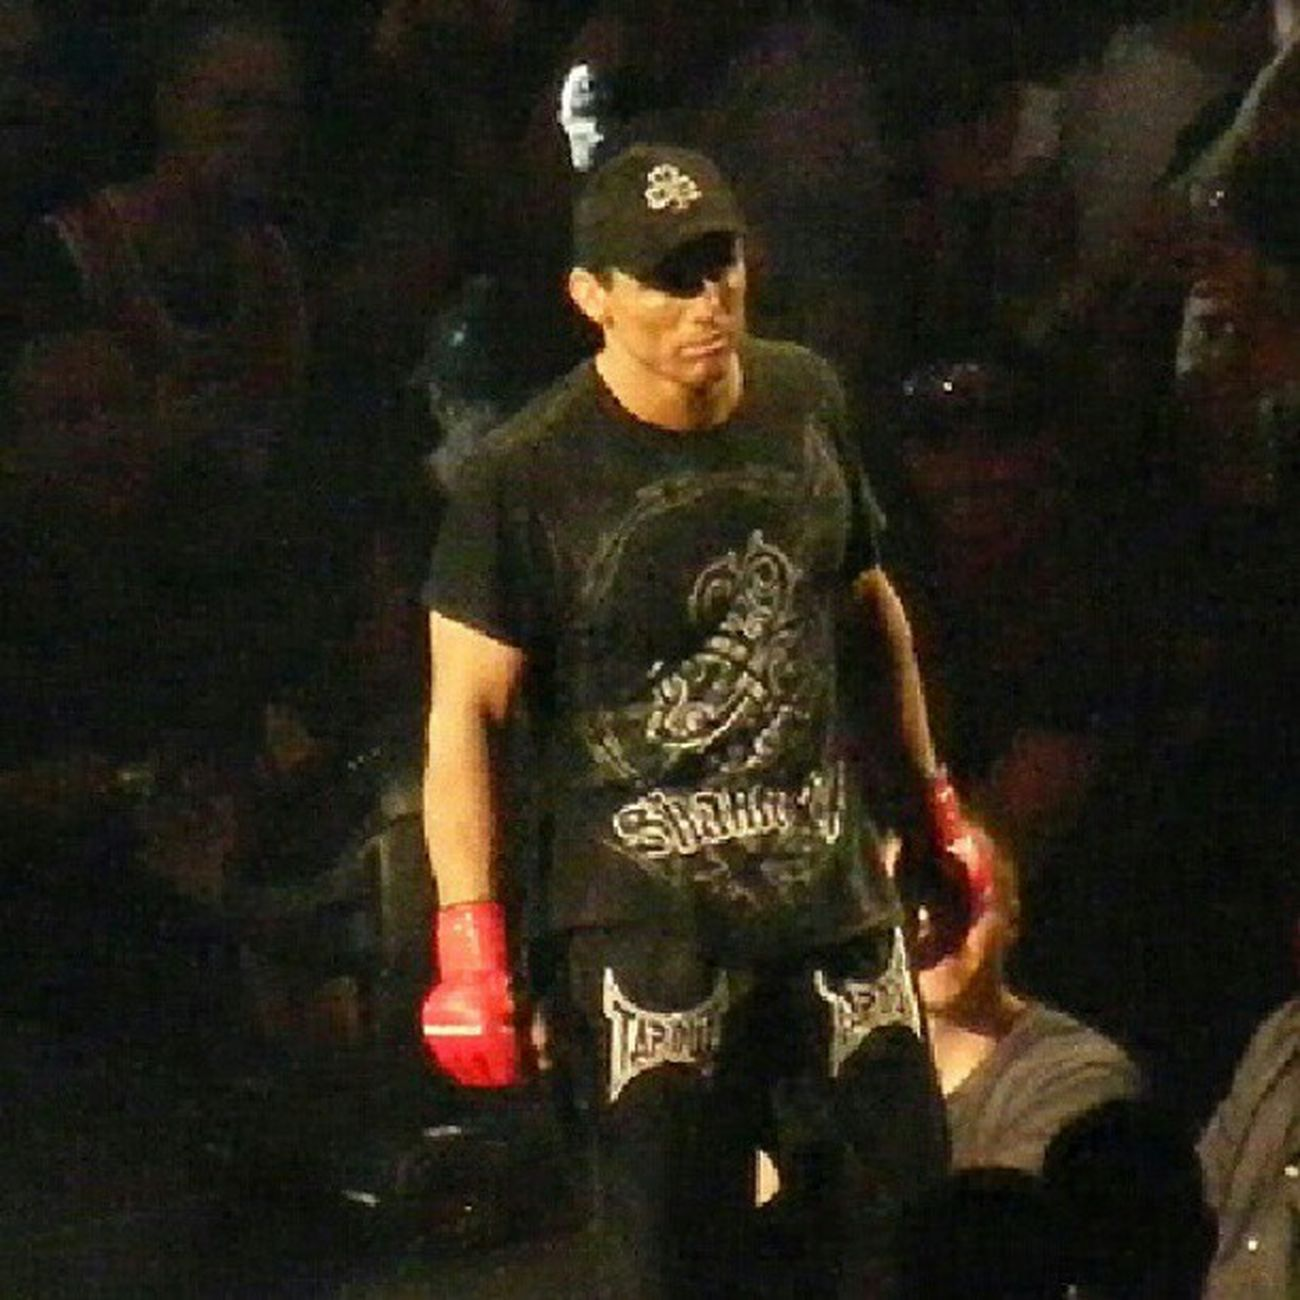 Strikeforce Frank Shamrock Strikeforce MMA Fighter OldPics